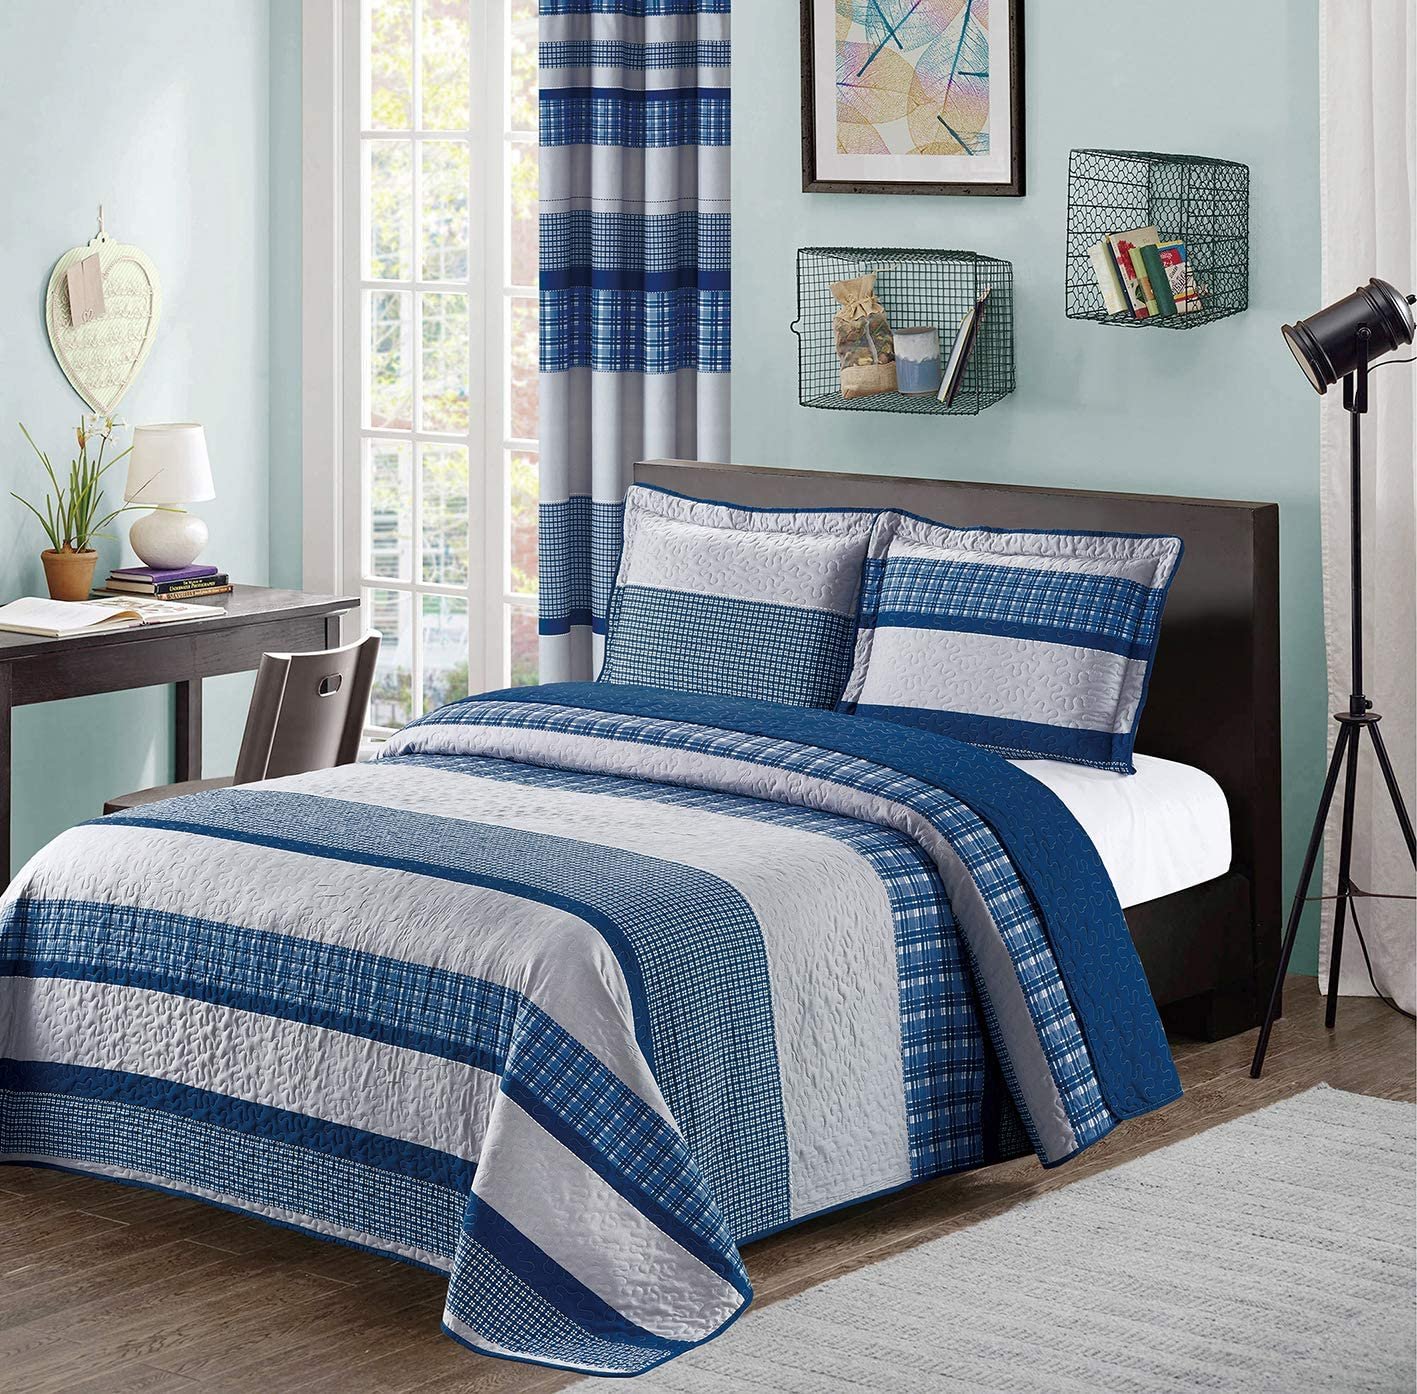 all american collection blue and gray modern plaid bedspread and pillow sham set matching curtains available king cal king size